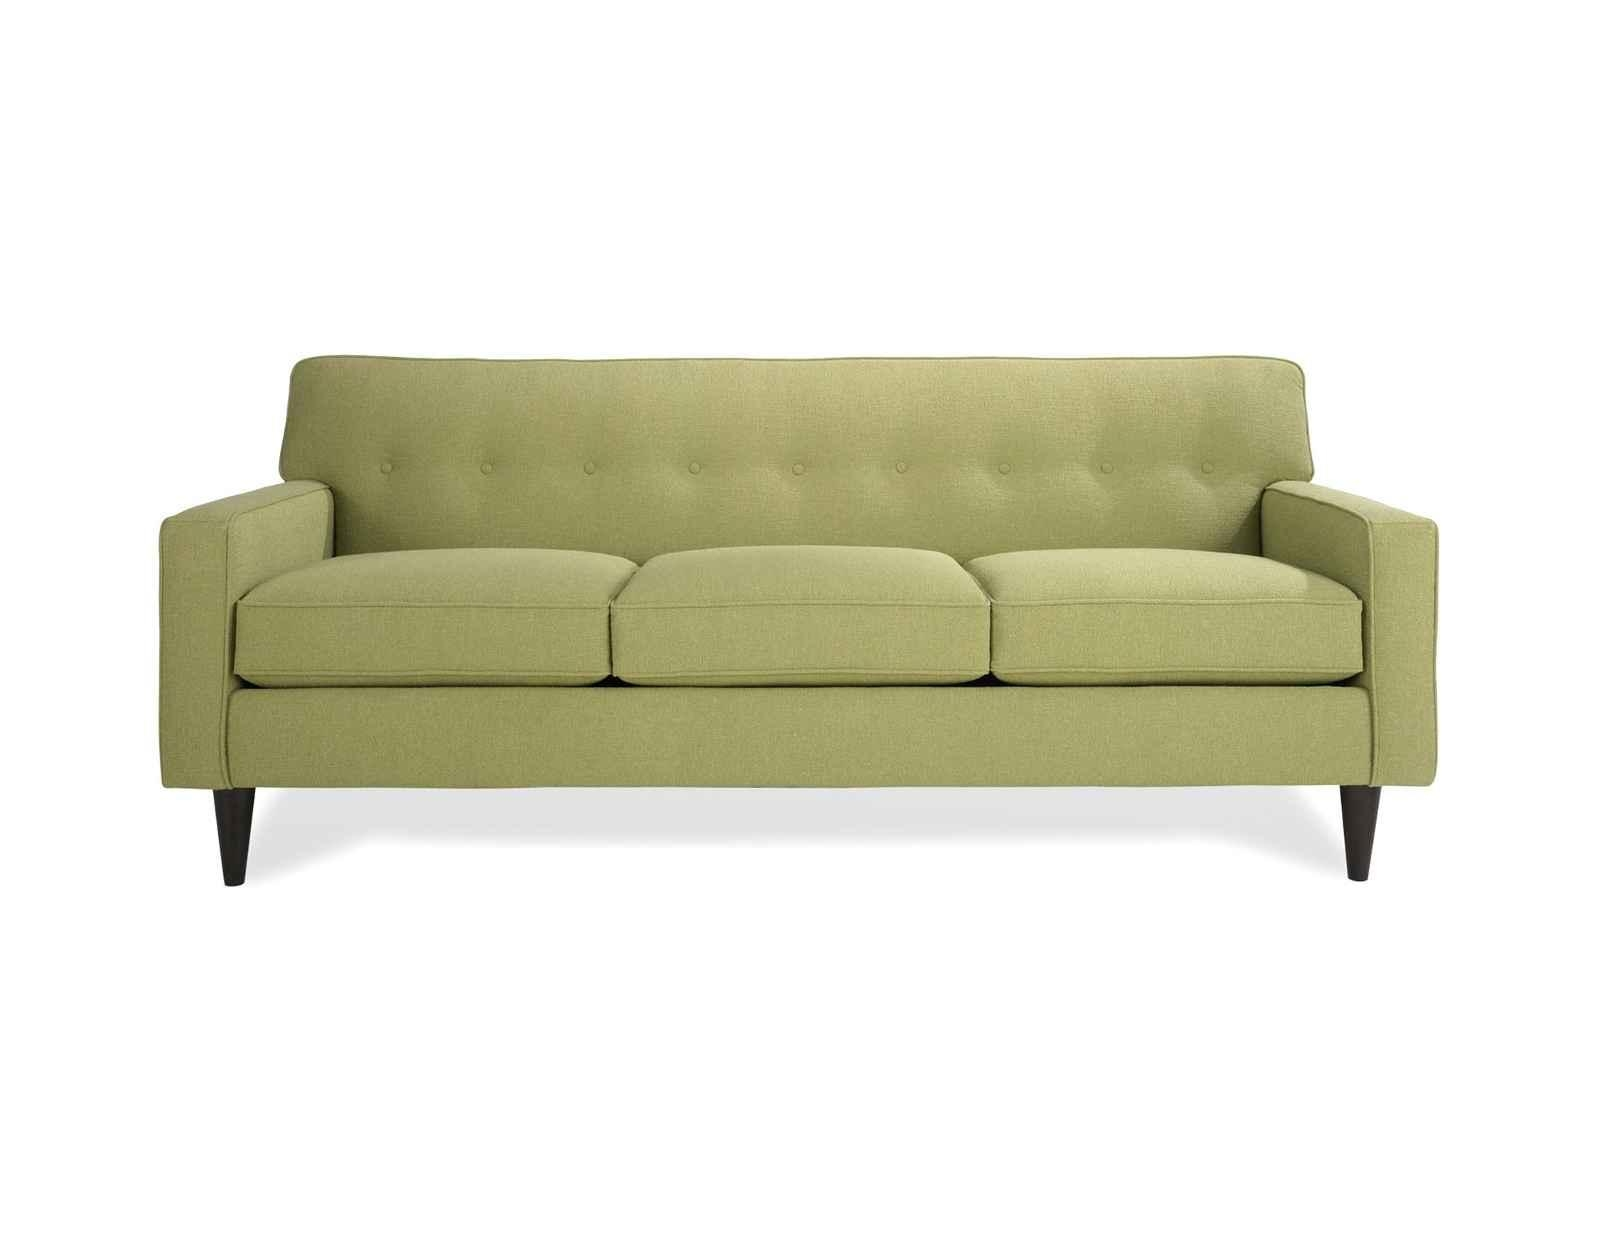 Green Sofa Contemporary Sofas Latest Bed Throw Pillows | Deseosol Within Green Sofas (View 20 of 20)